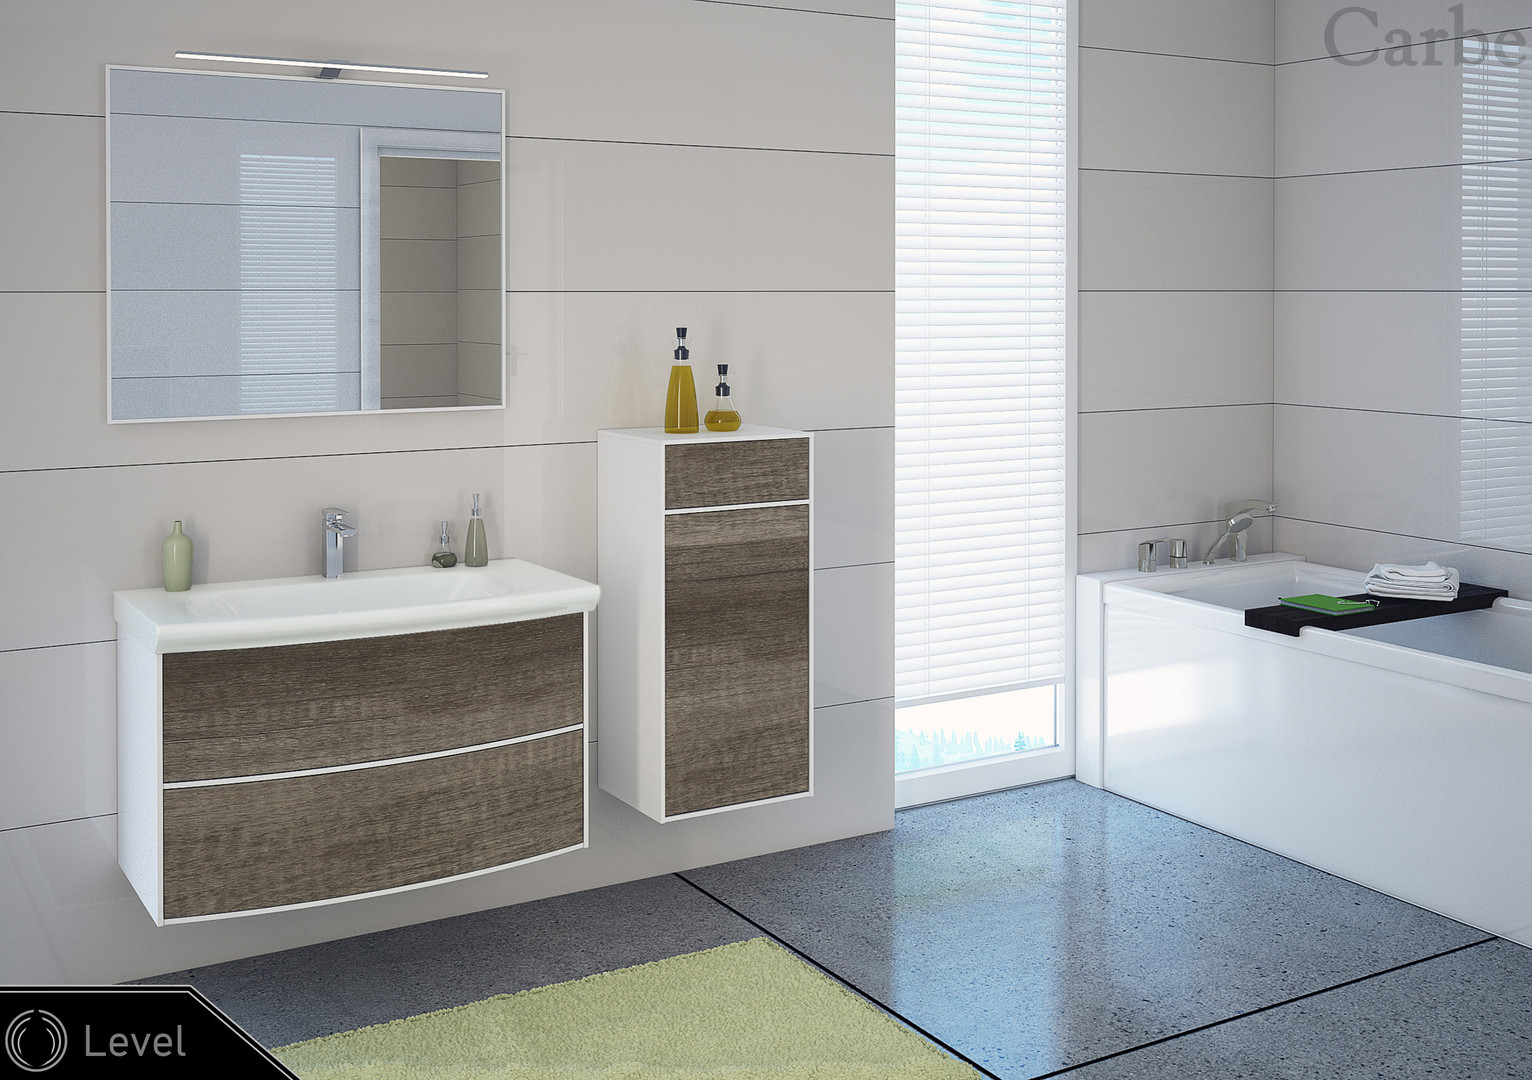 Level - Oak Carbon, Dolmite Washbasin, Soft Closing, Push To Open